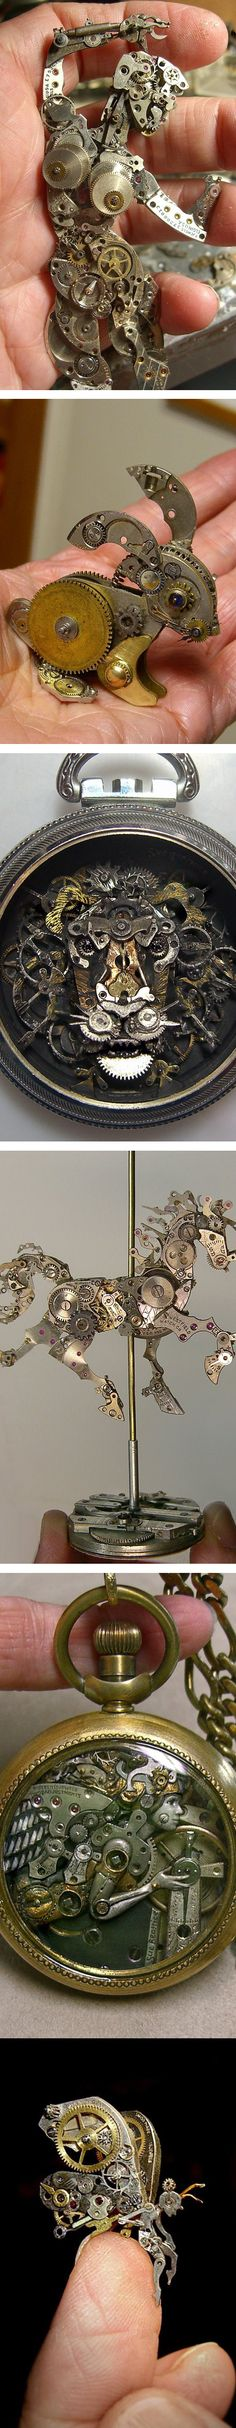 Watch Part Sculptures by Sue Beatrice